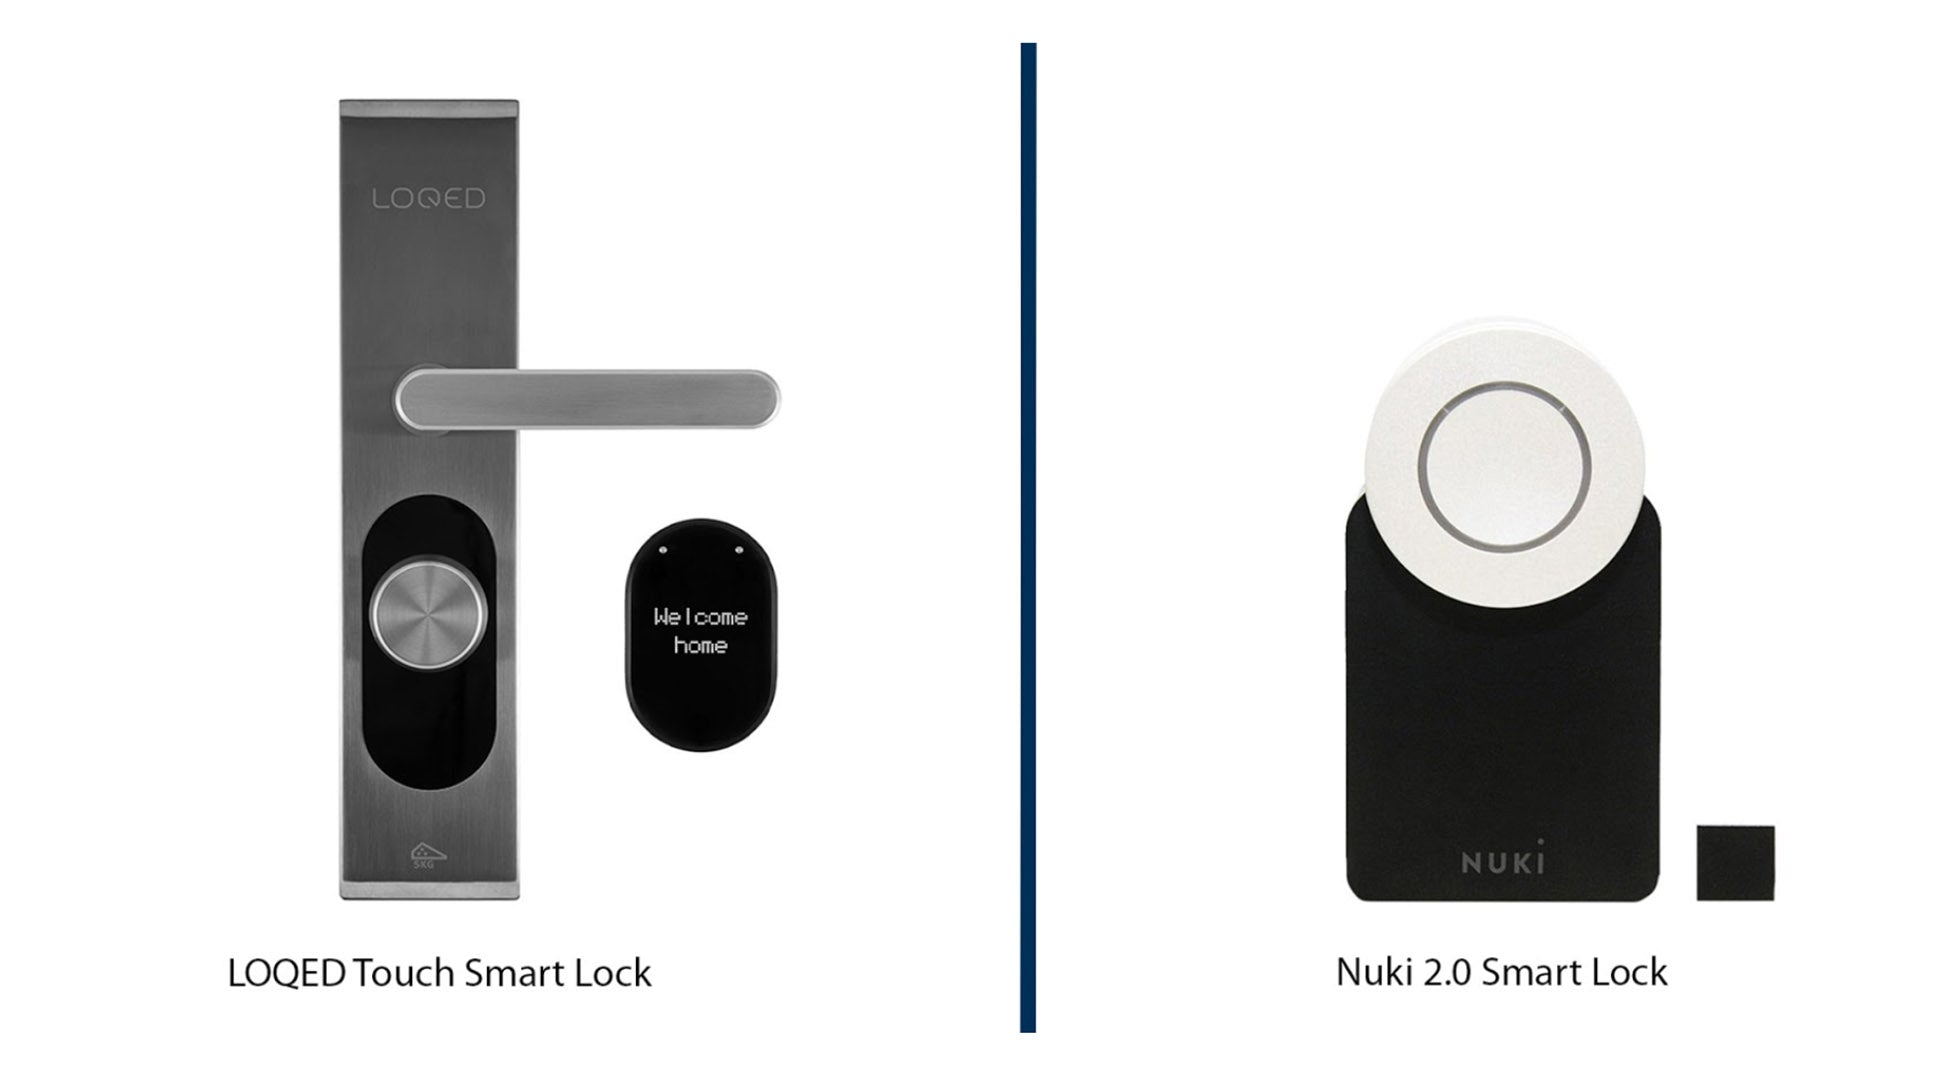 LOQED vs Nuki smart lock comparison